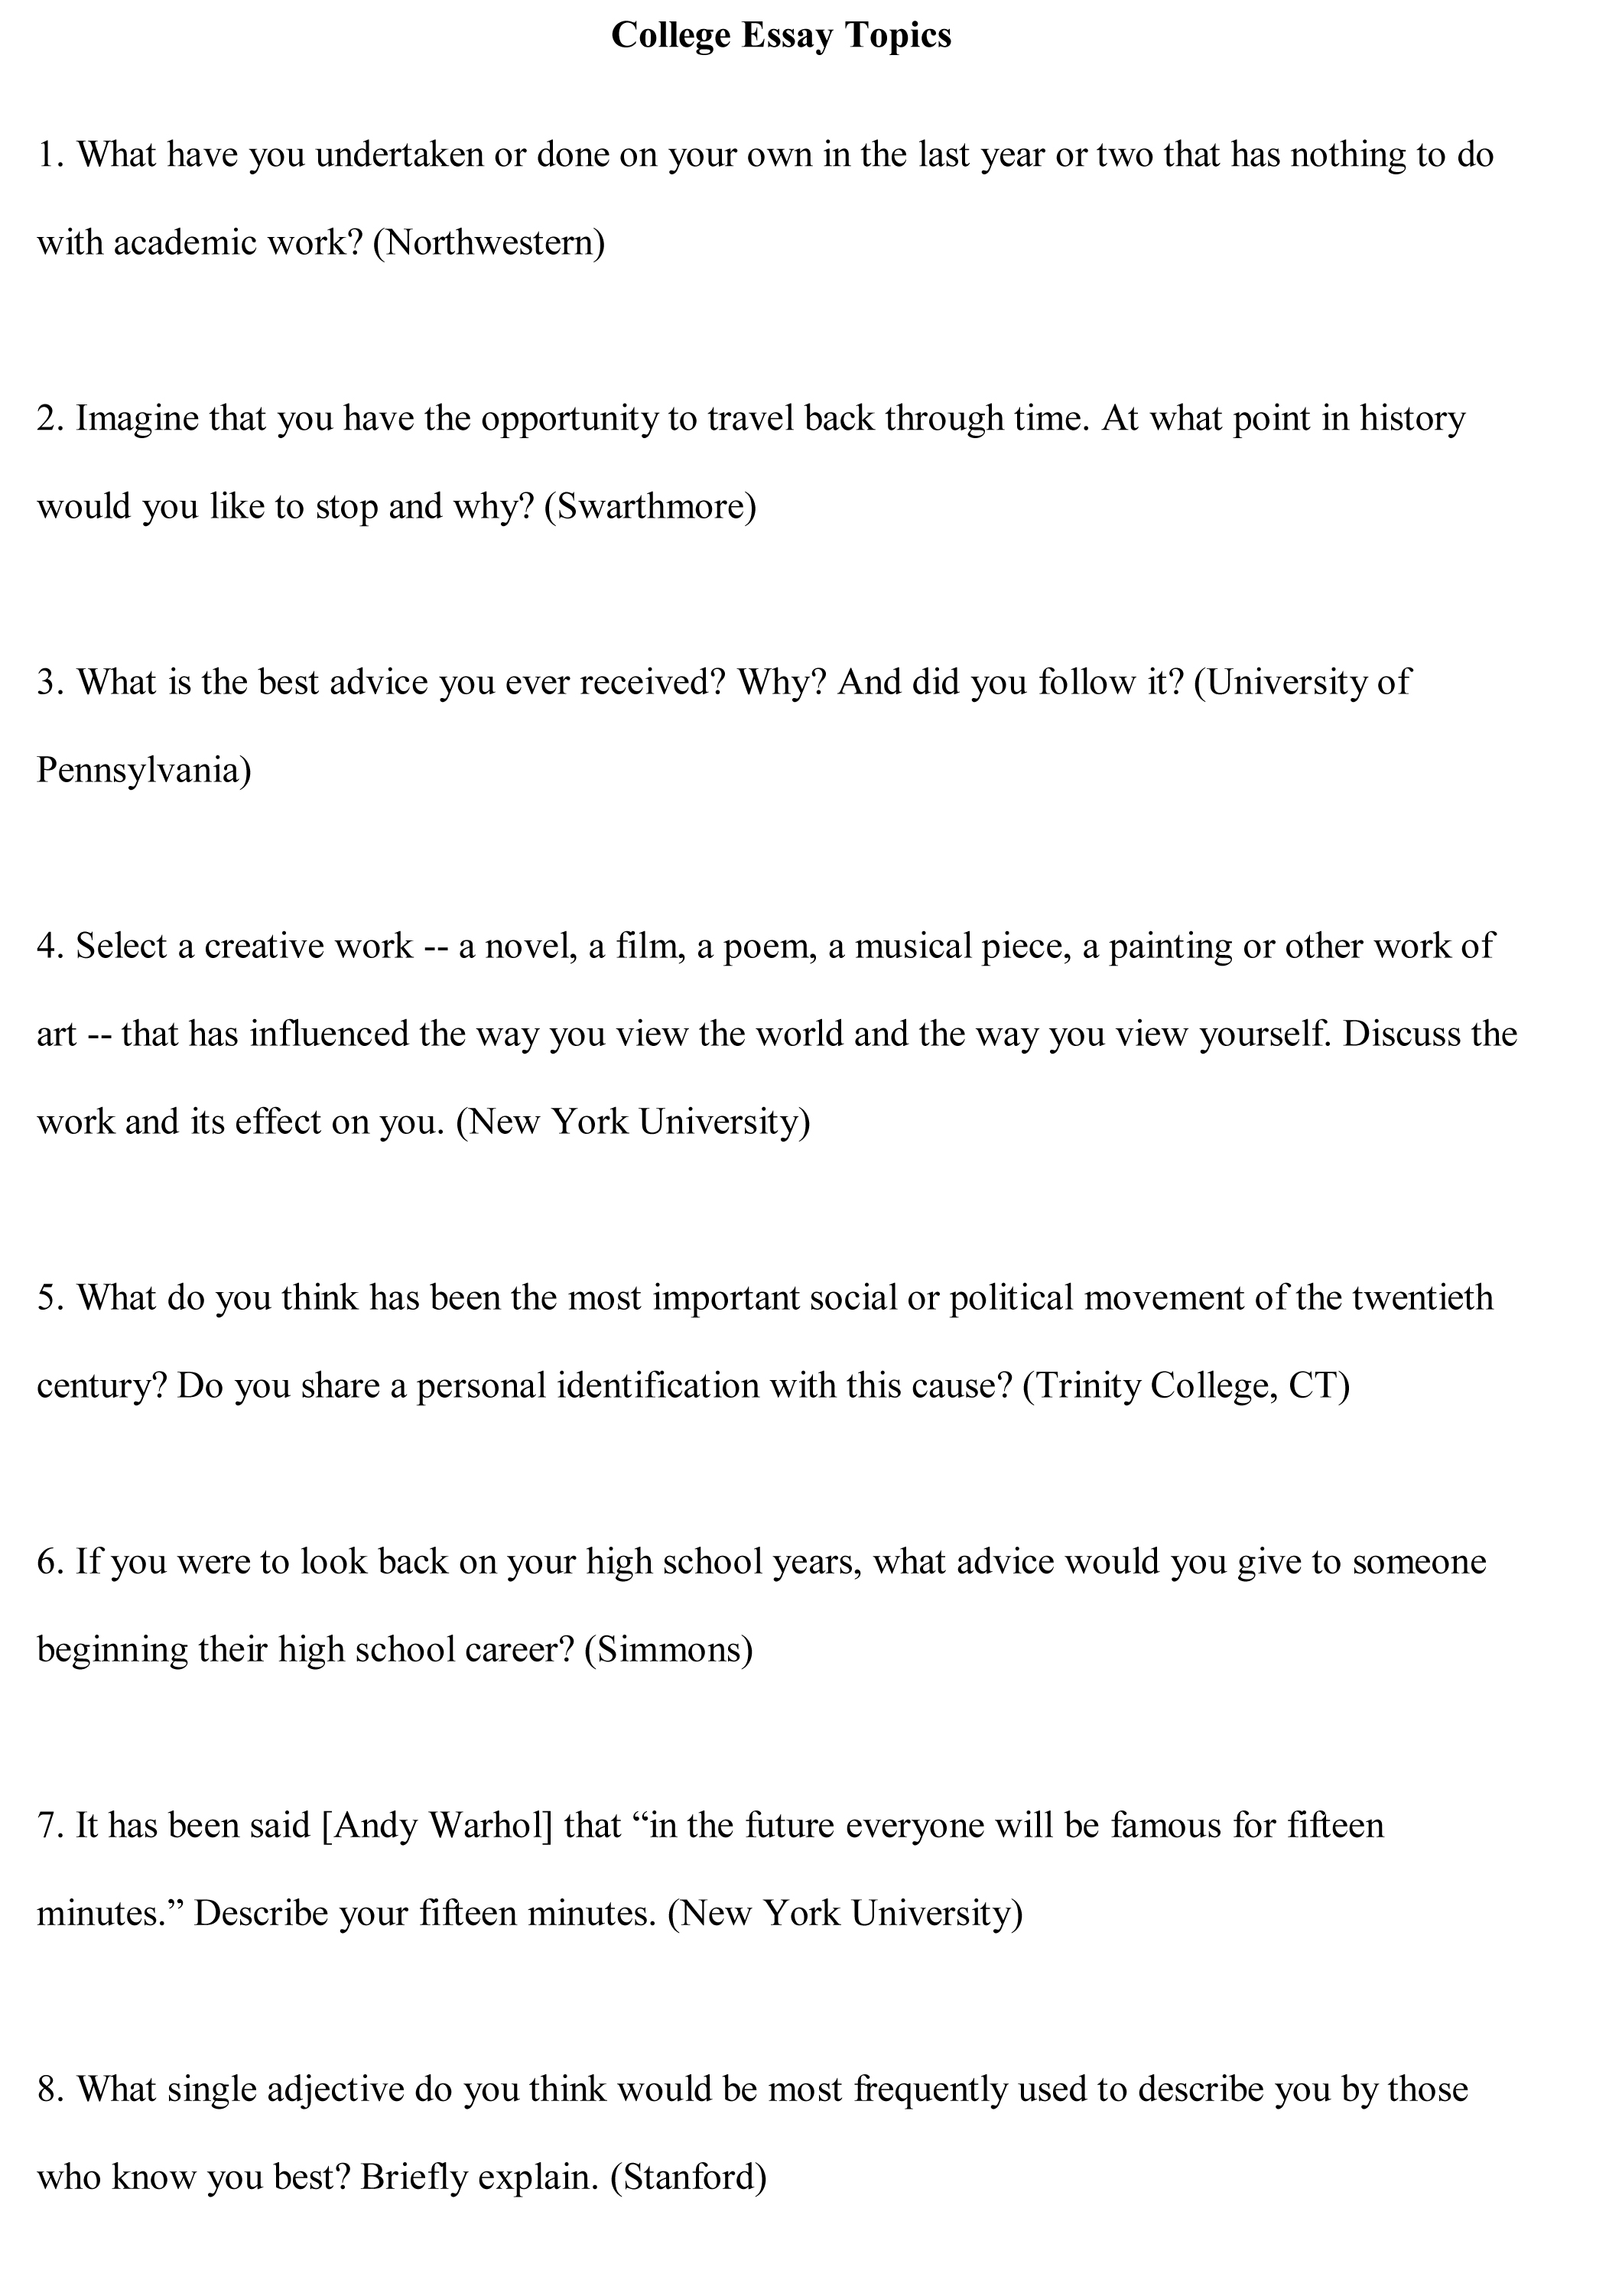 014 Essay Topics College Free Sample1 Archaicawful List For High School Students Freshman Full